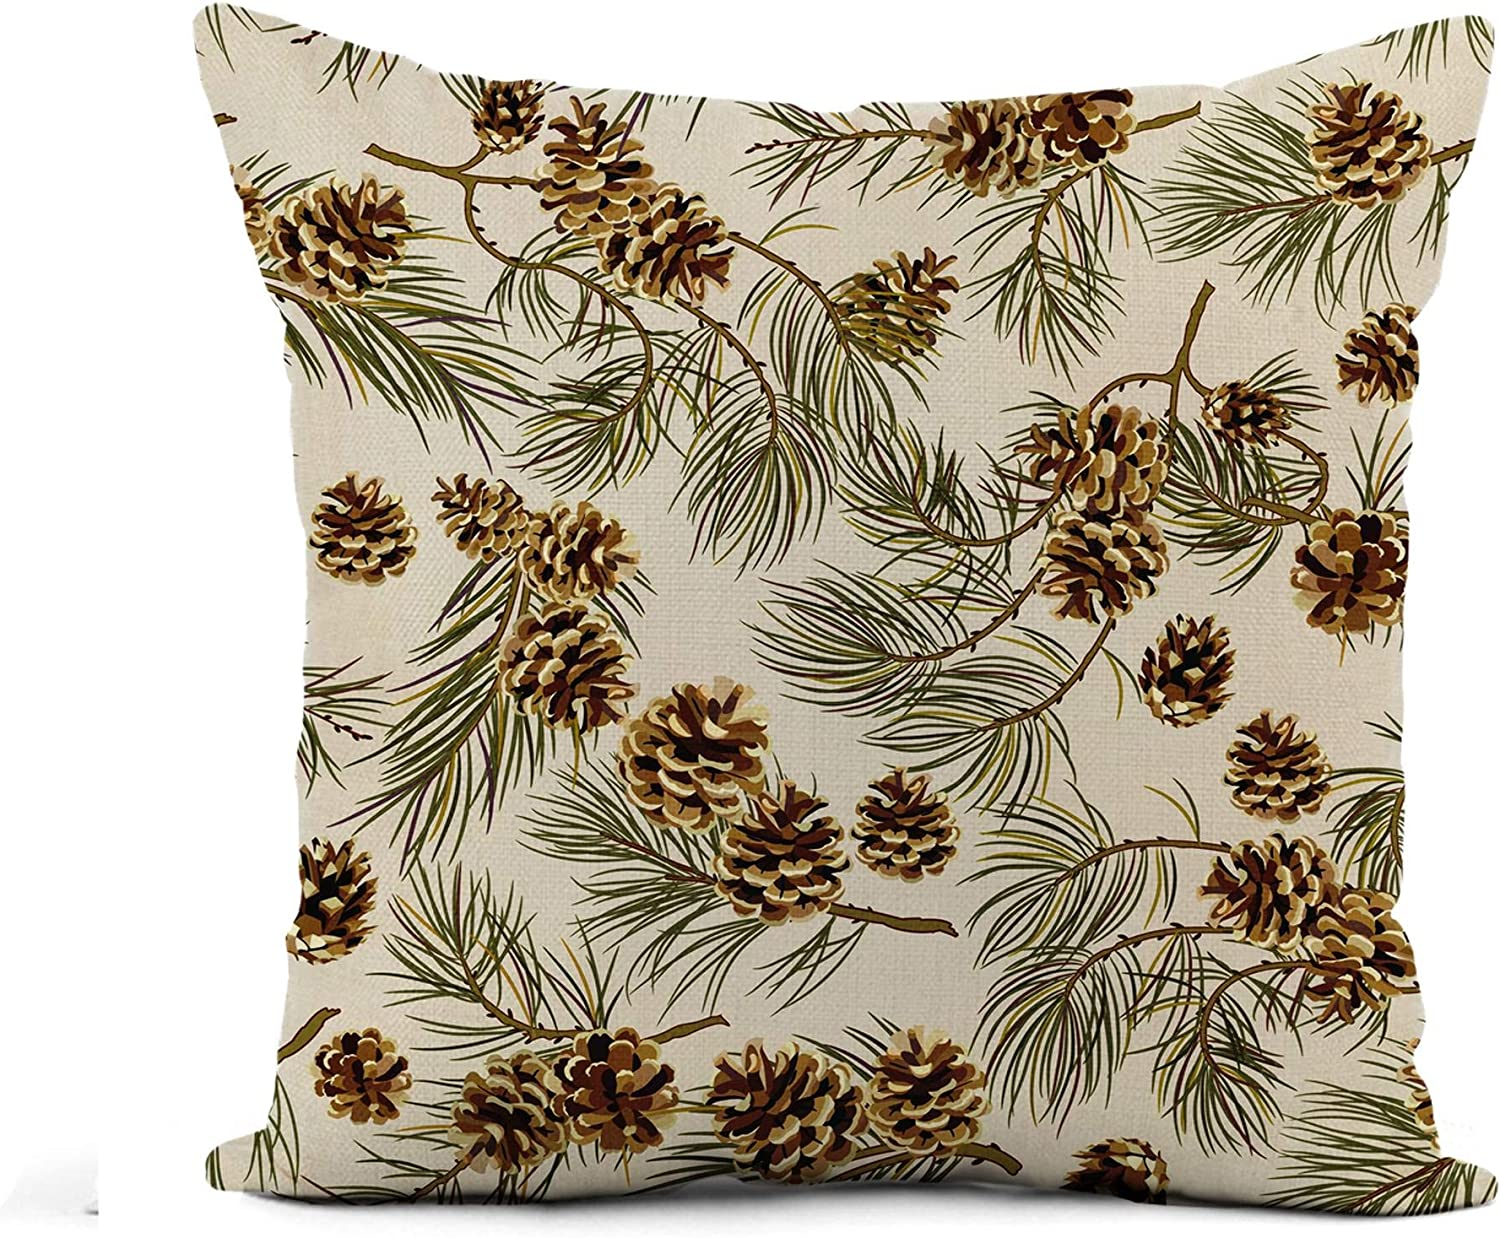 Awowee Flax Throw Pillow Cover Green Pattern Pine Cones Realistic Look Vintage Pinecone Winter 18x18 Inches Pillowcase Home Decor Square Cotton Linen Pillow Case Cushion Cover